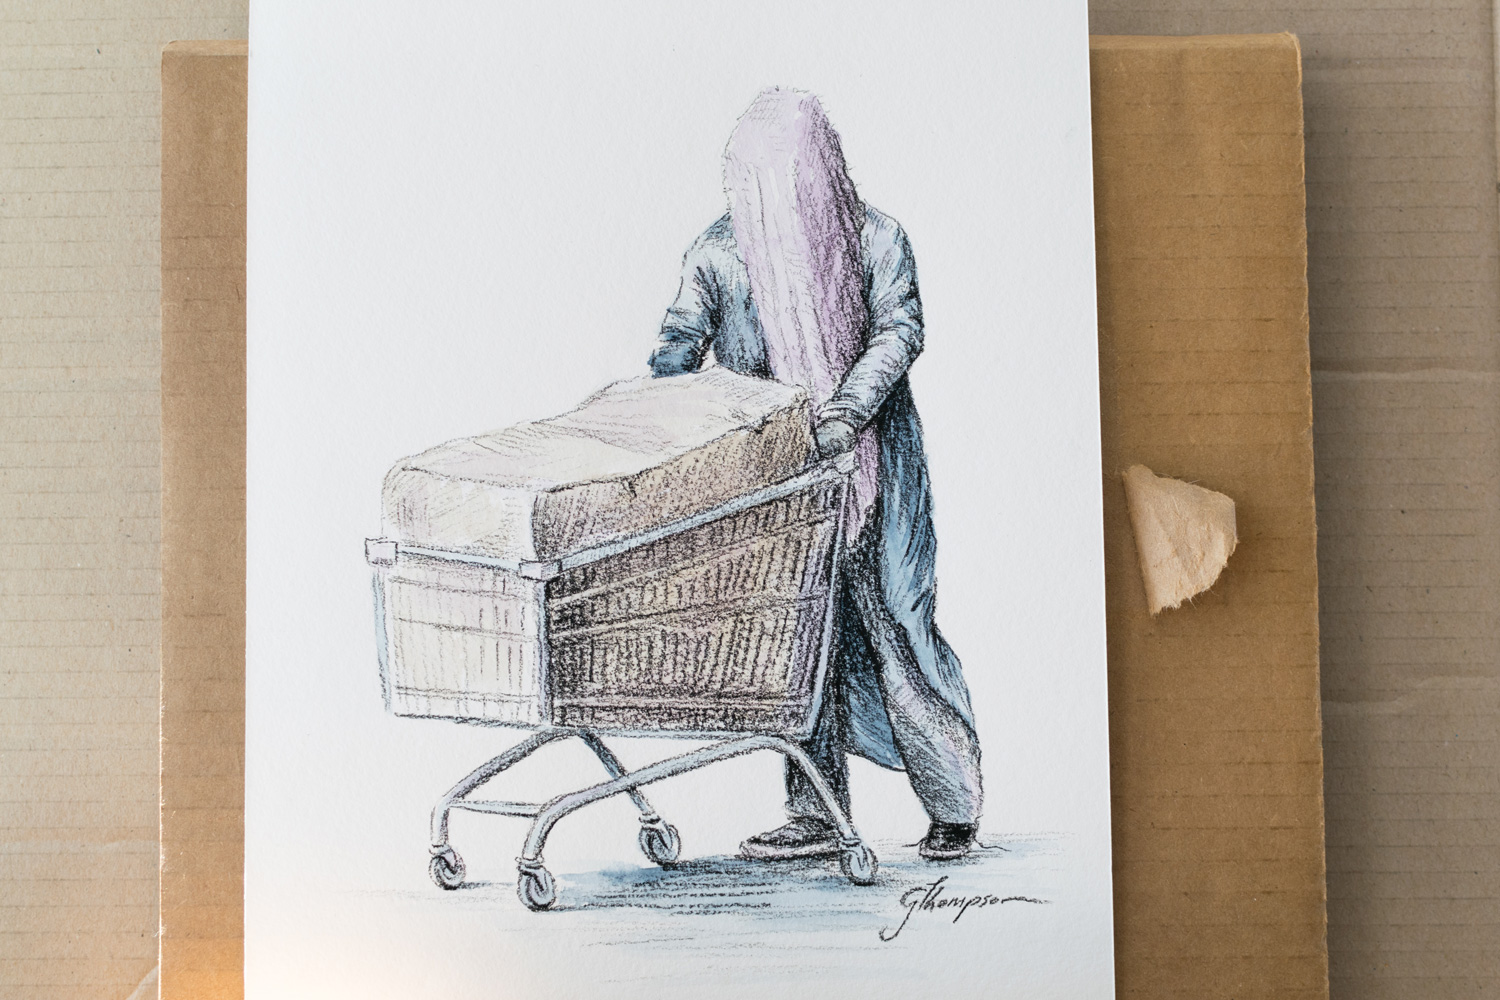 Sketch of the haunting homeless figure I saw which prompted my response.